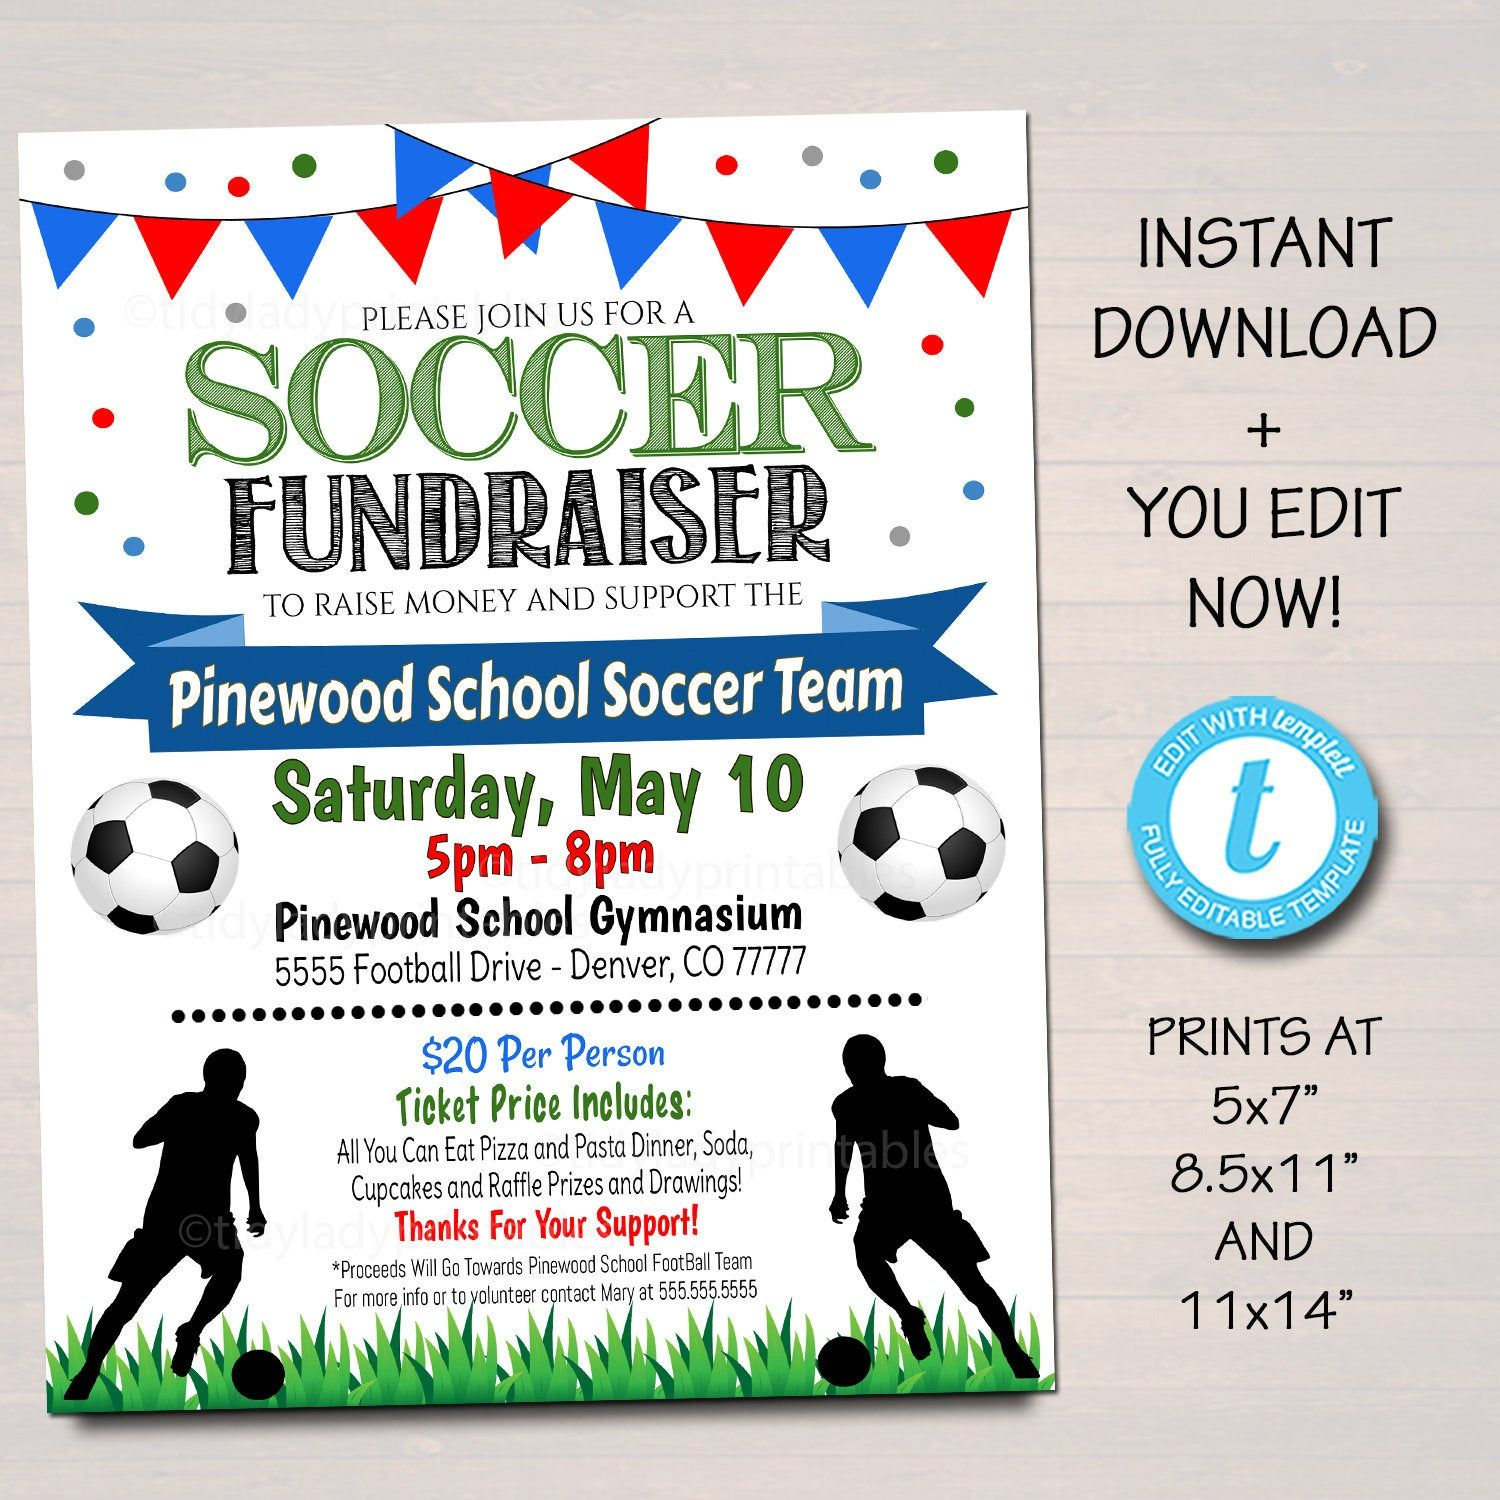 Editable Soccer Fundraiser Flyer Printable Pta Pto Flyer School Benefit Fundraiser Event Poster Digital Soccer Banquet Party Invitation In 2020 Soccer Fundraisers Fundraiser Flyer Team Fundraiser